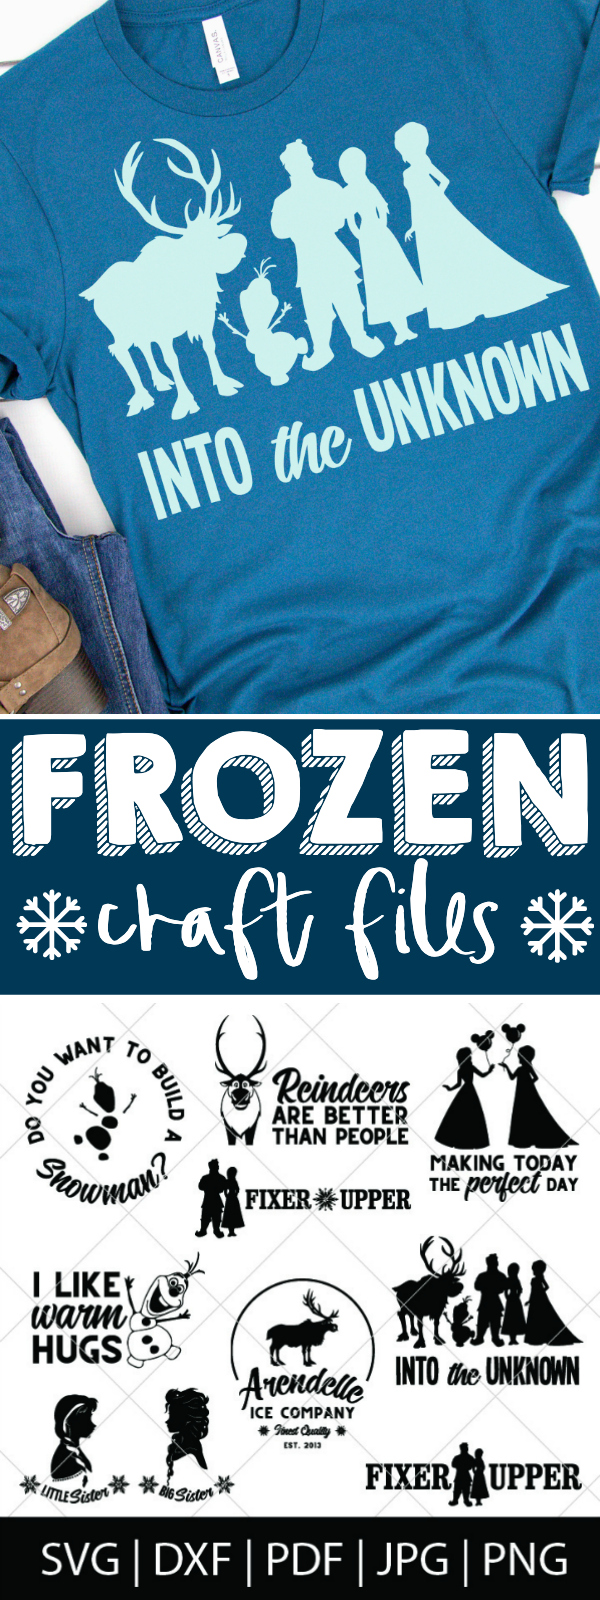 Do you want to build a snowman?! Our favorite snowman Olaf is back with Anna, Elsa, Kristoff and Sven for Frozen 2! Which means we needed to add new designs to the shop! Introducing our Frozen SVG Bundles, including Raised by Trolls, I like Warm Hugs, and Reindeers are Better than People! Plus, Disney World Group Shirt Designs! | The Love Nerds #Disneycricut #diychristmas #disneysvg #disneyshirt